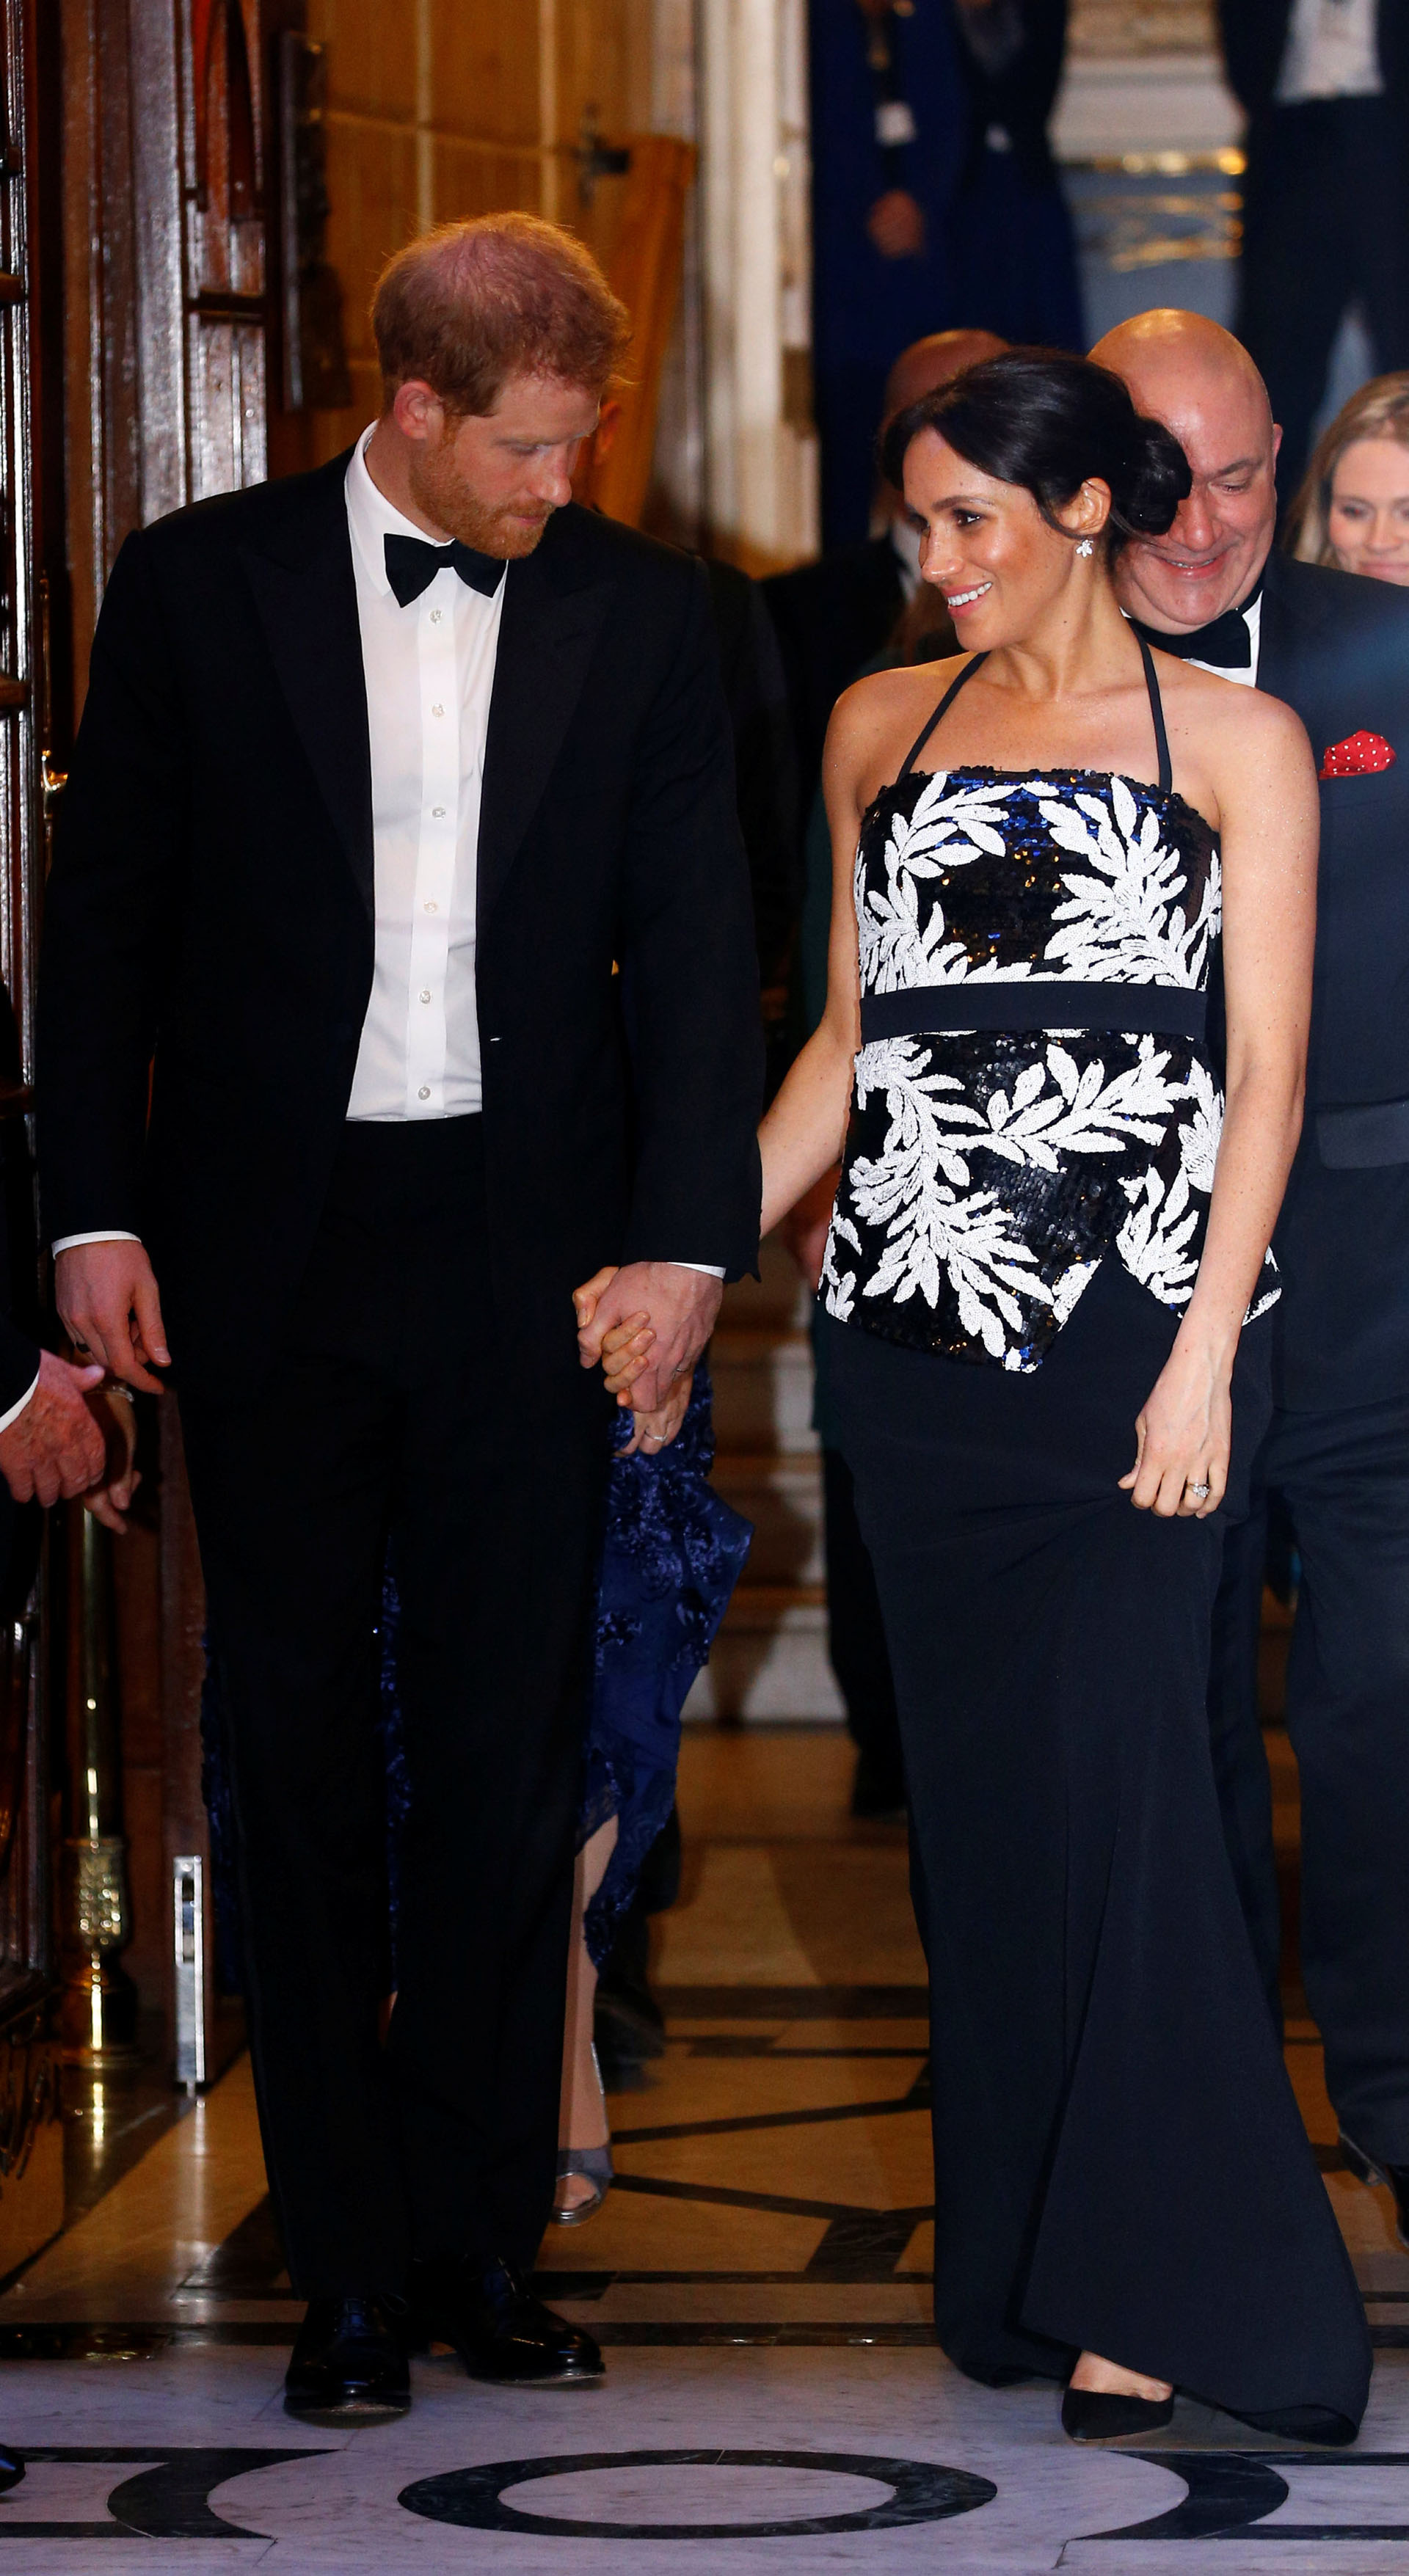 Britain's Prince Harry and Meghan, the Duchess of Sussex, leave after the Royal Variety Performance in London